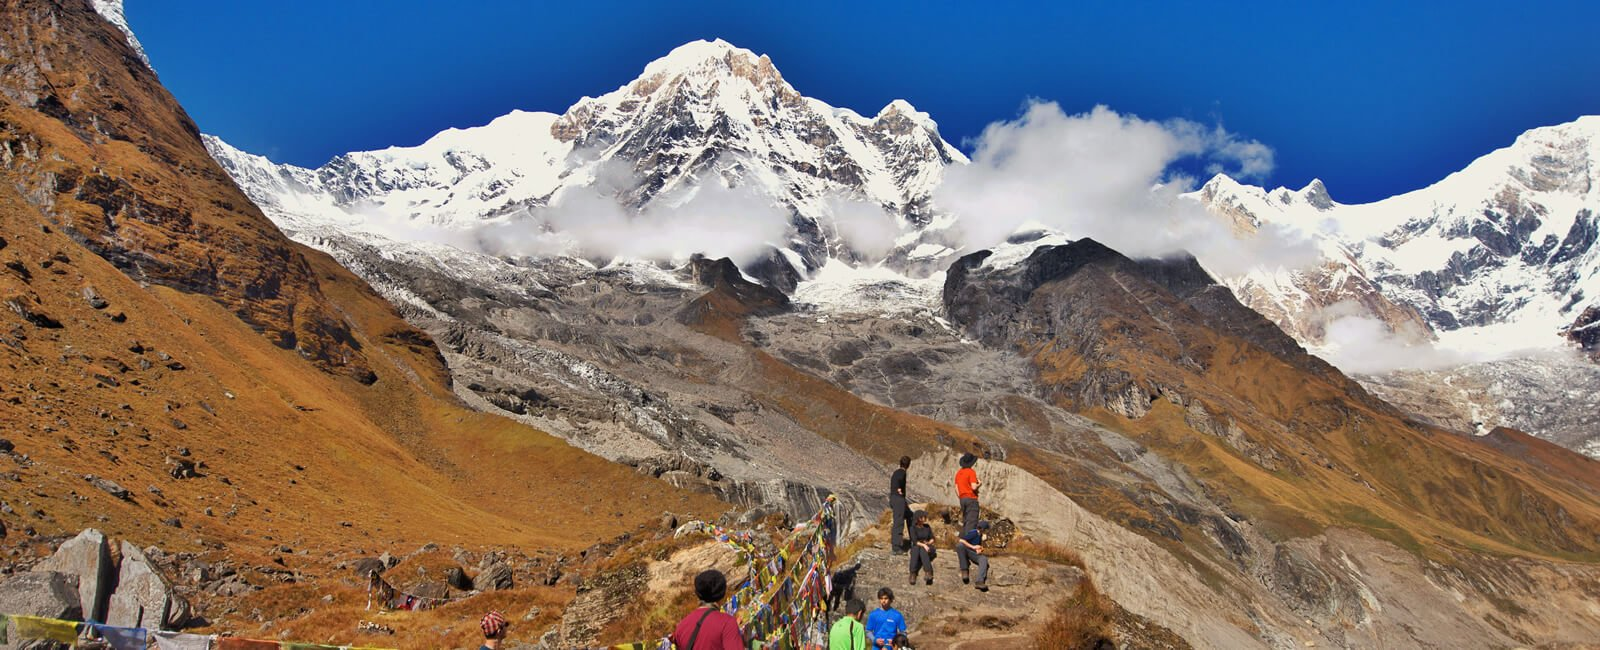 Best time for Annapurna Base Camp Trek